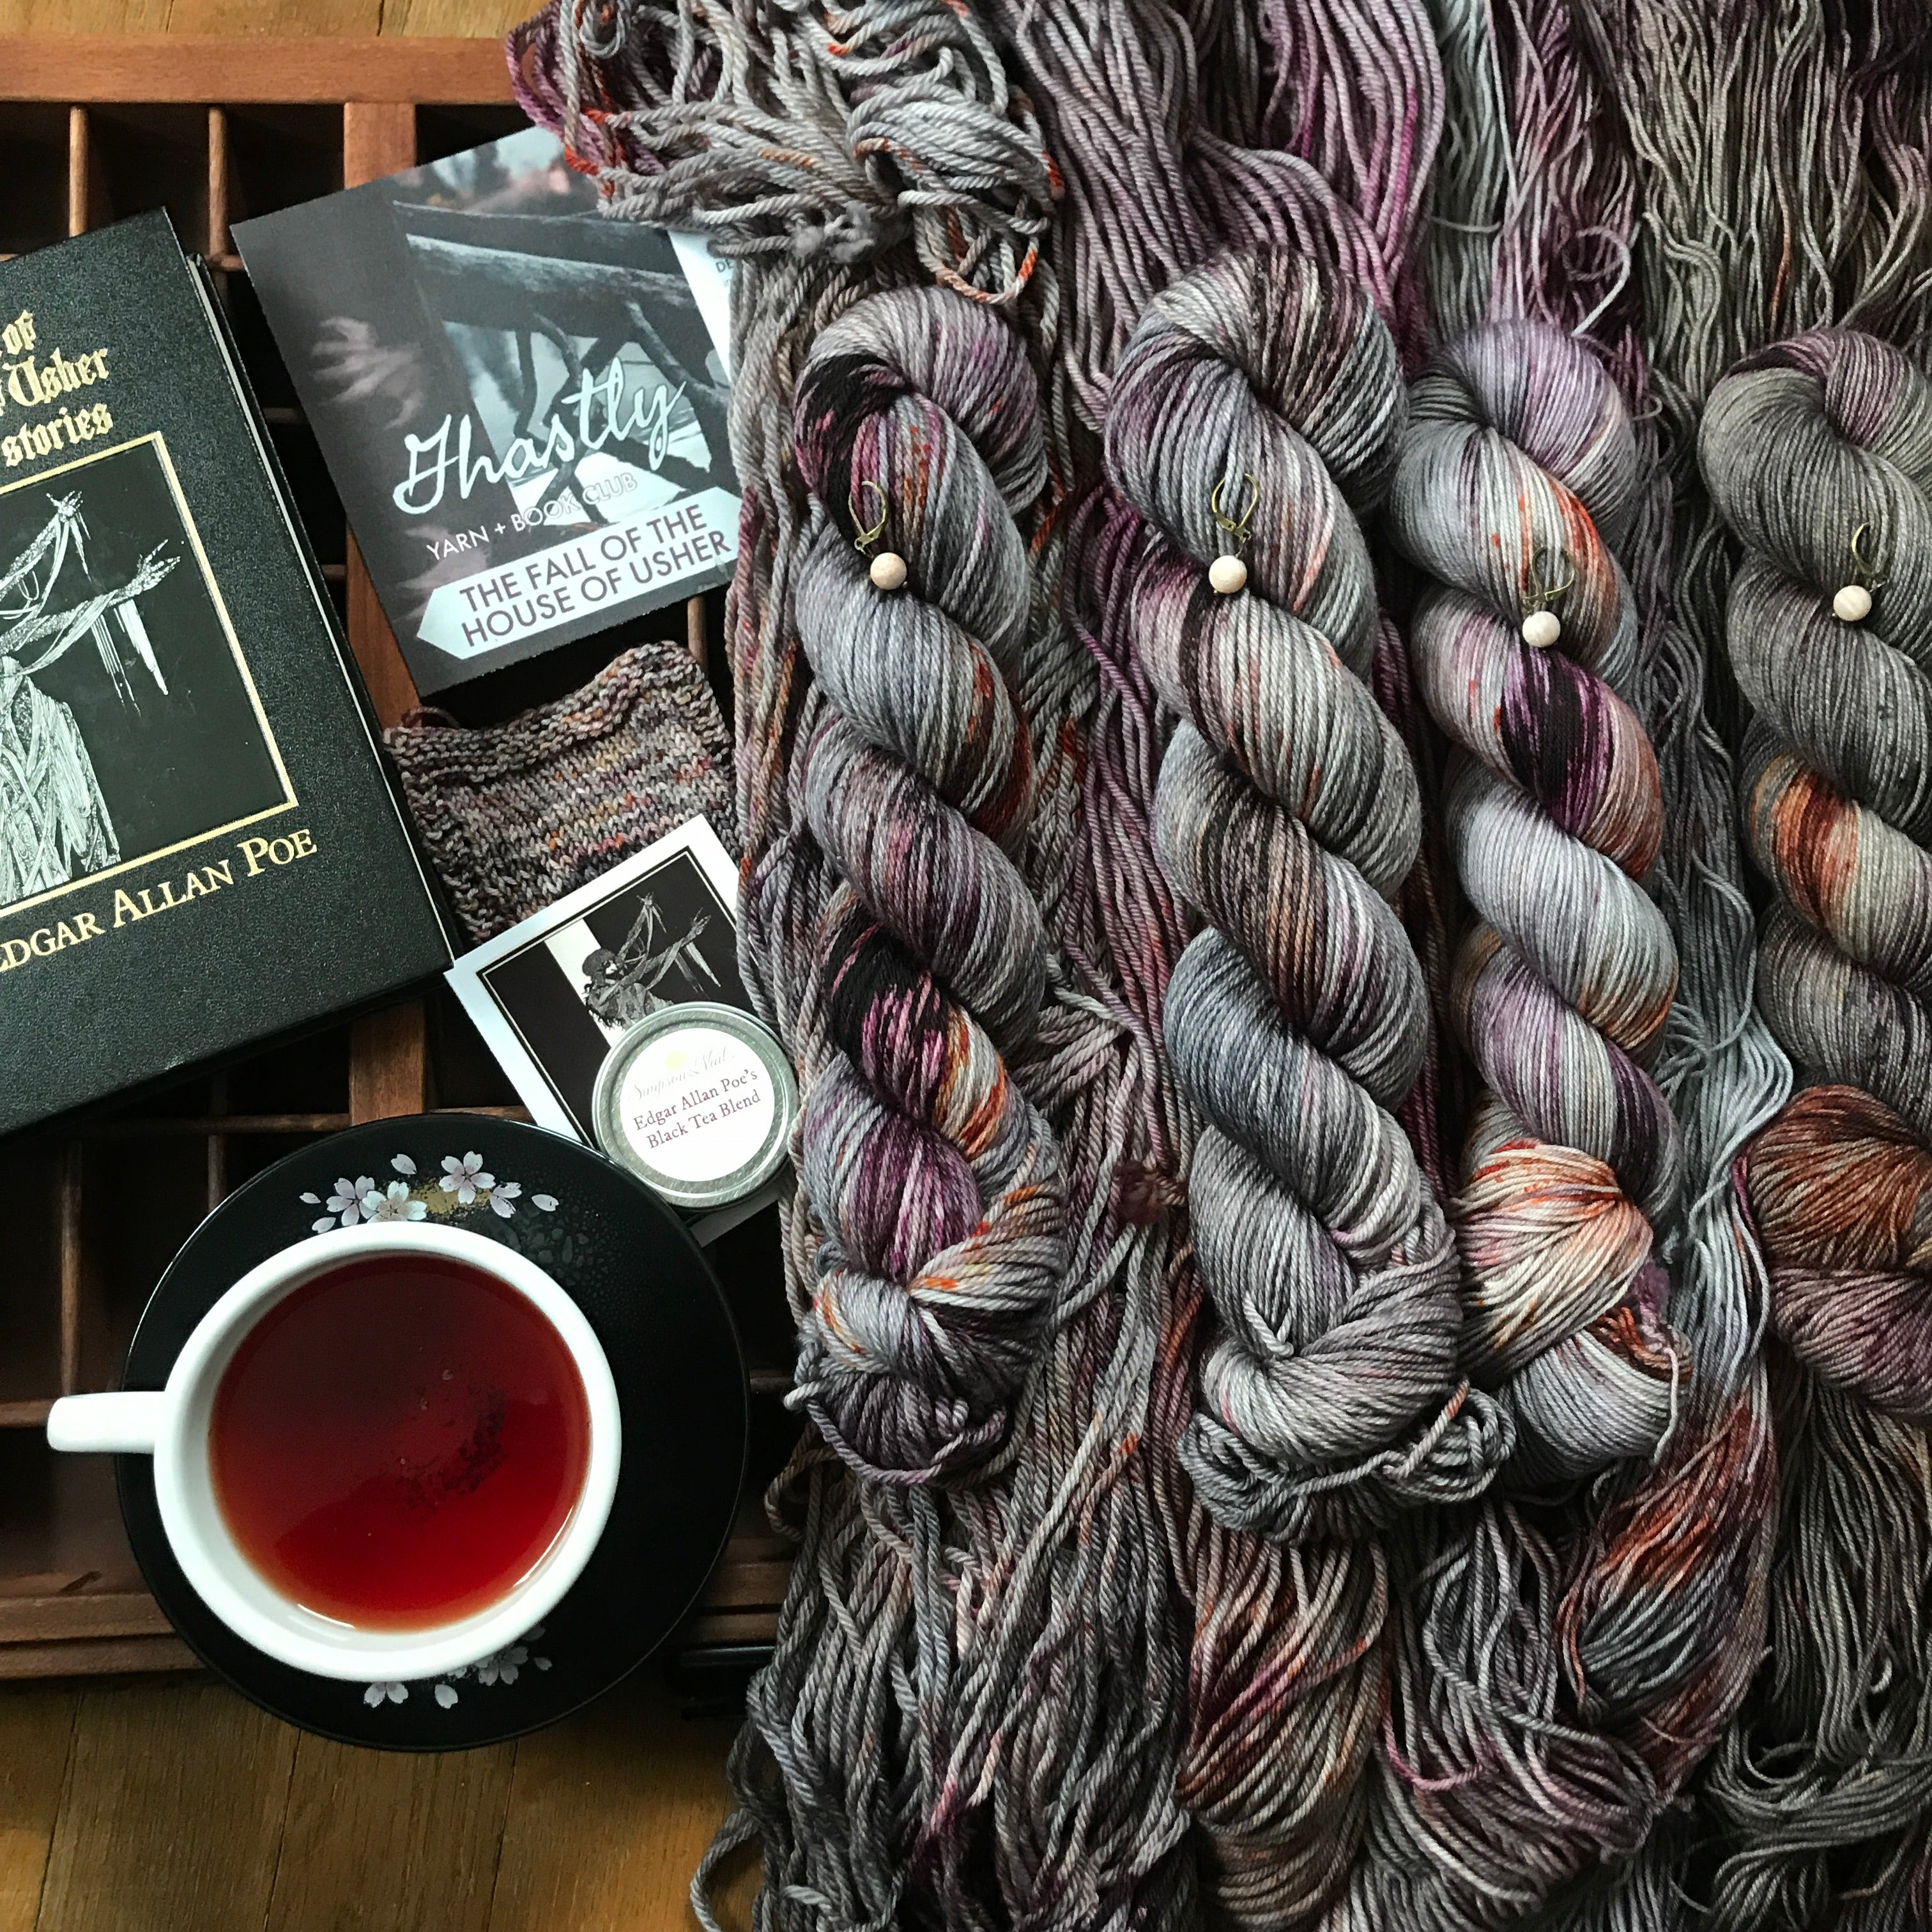 The Fall of the House of Usher yarn club